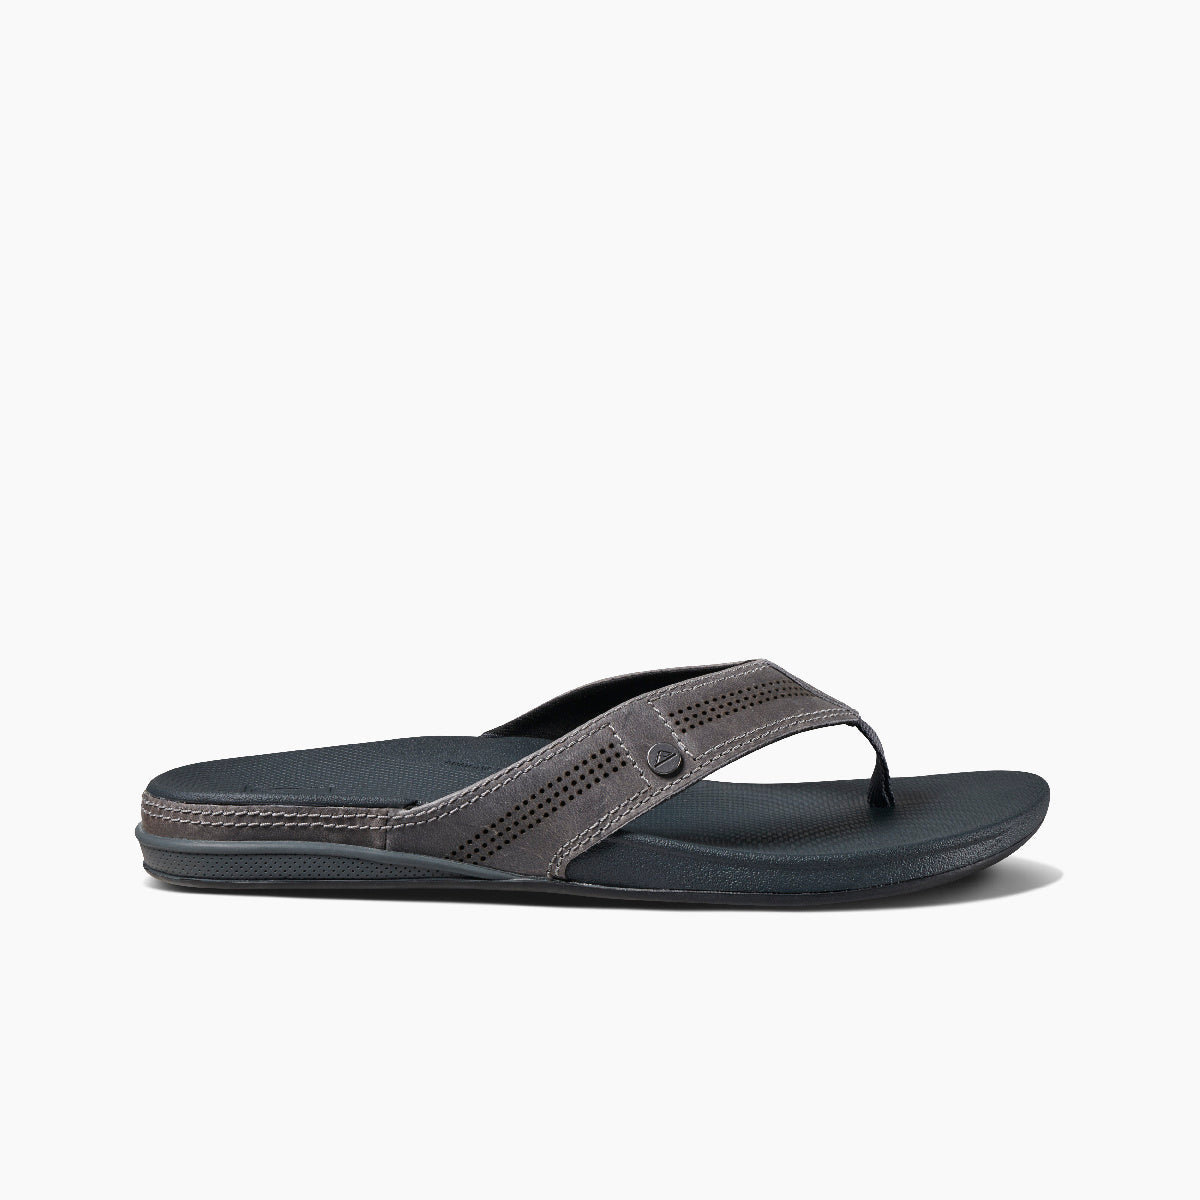 Reef Cushion Bounce Lux Sandals - 88 Gear